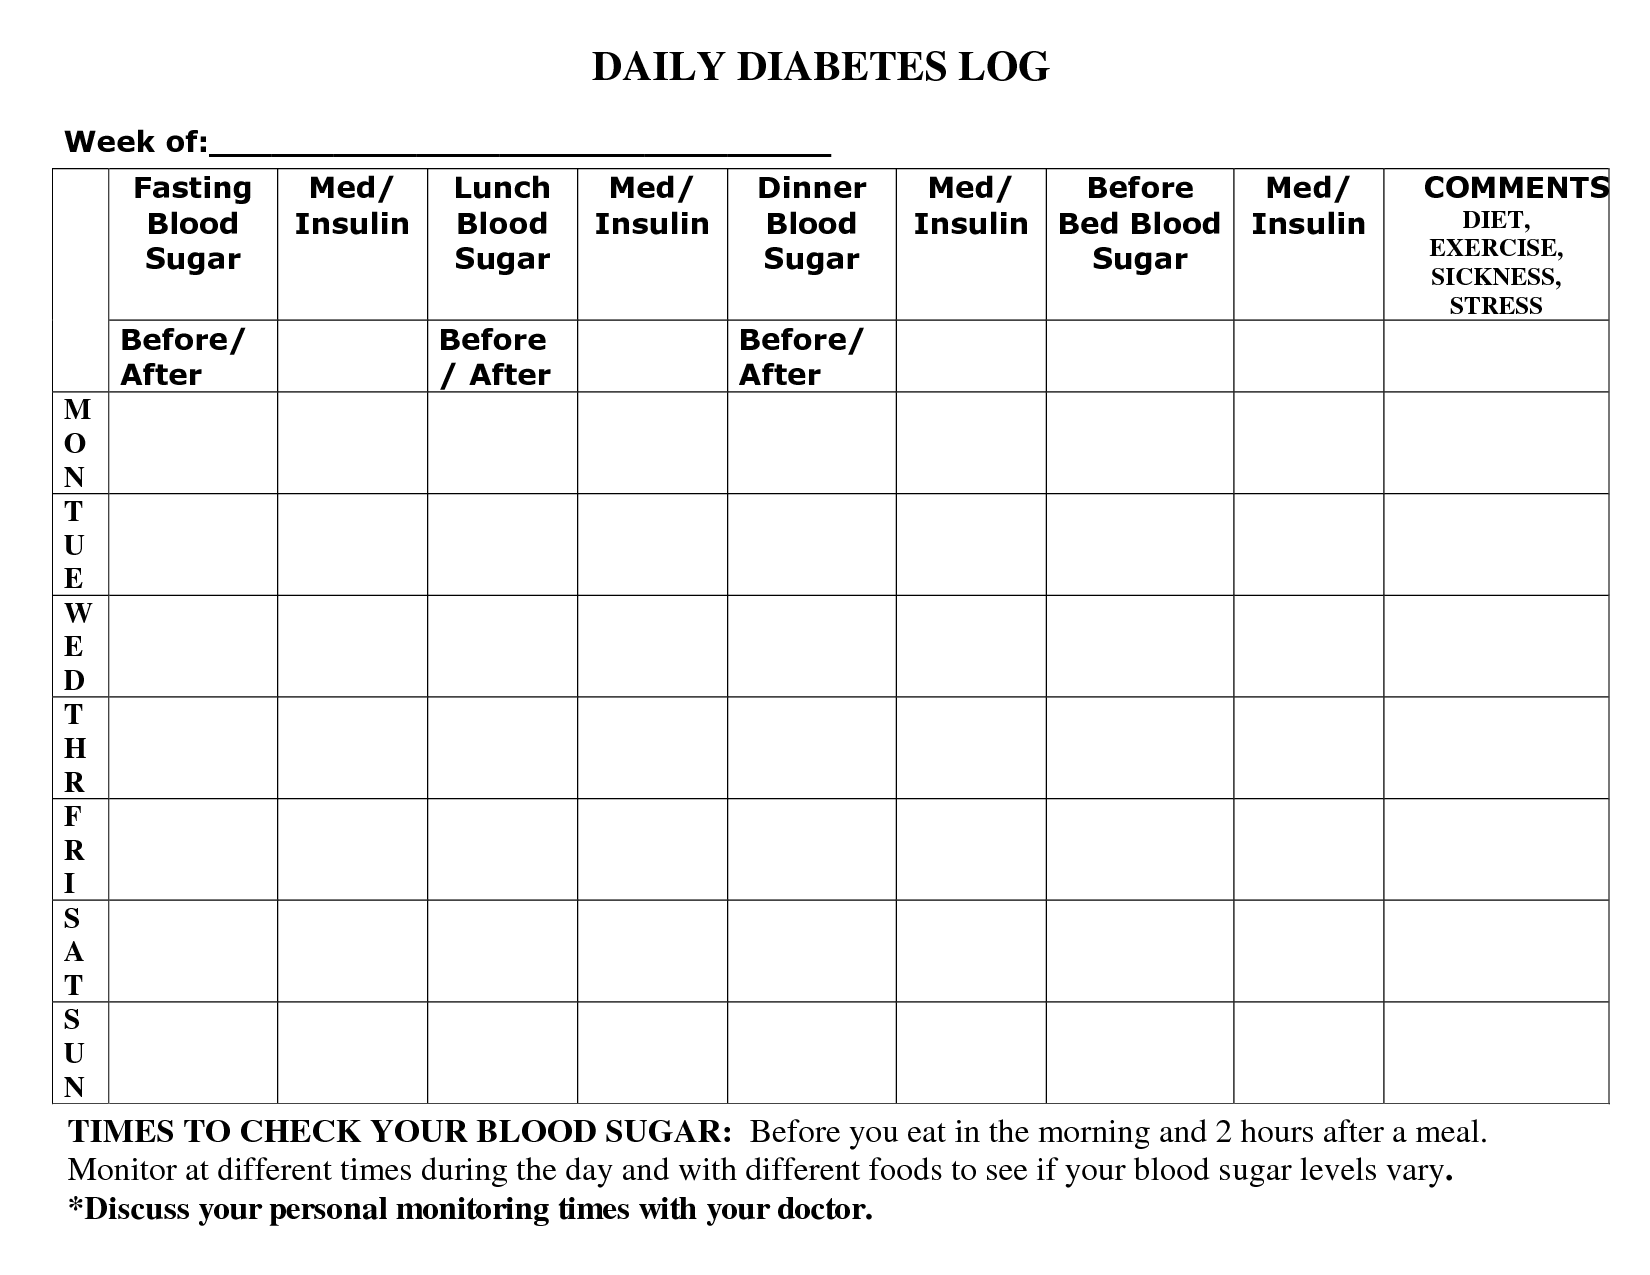 image regarding Blood Glucose and Food Log Printable named Printable Diabetic Food items Log Sheets do it myselfs pt 2